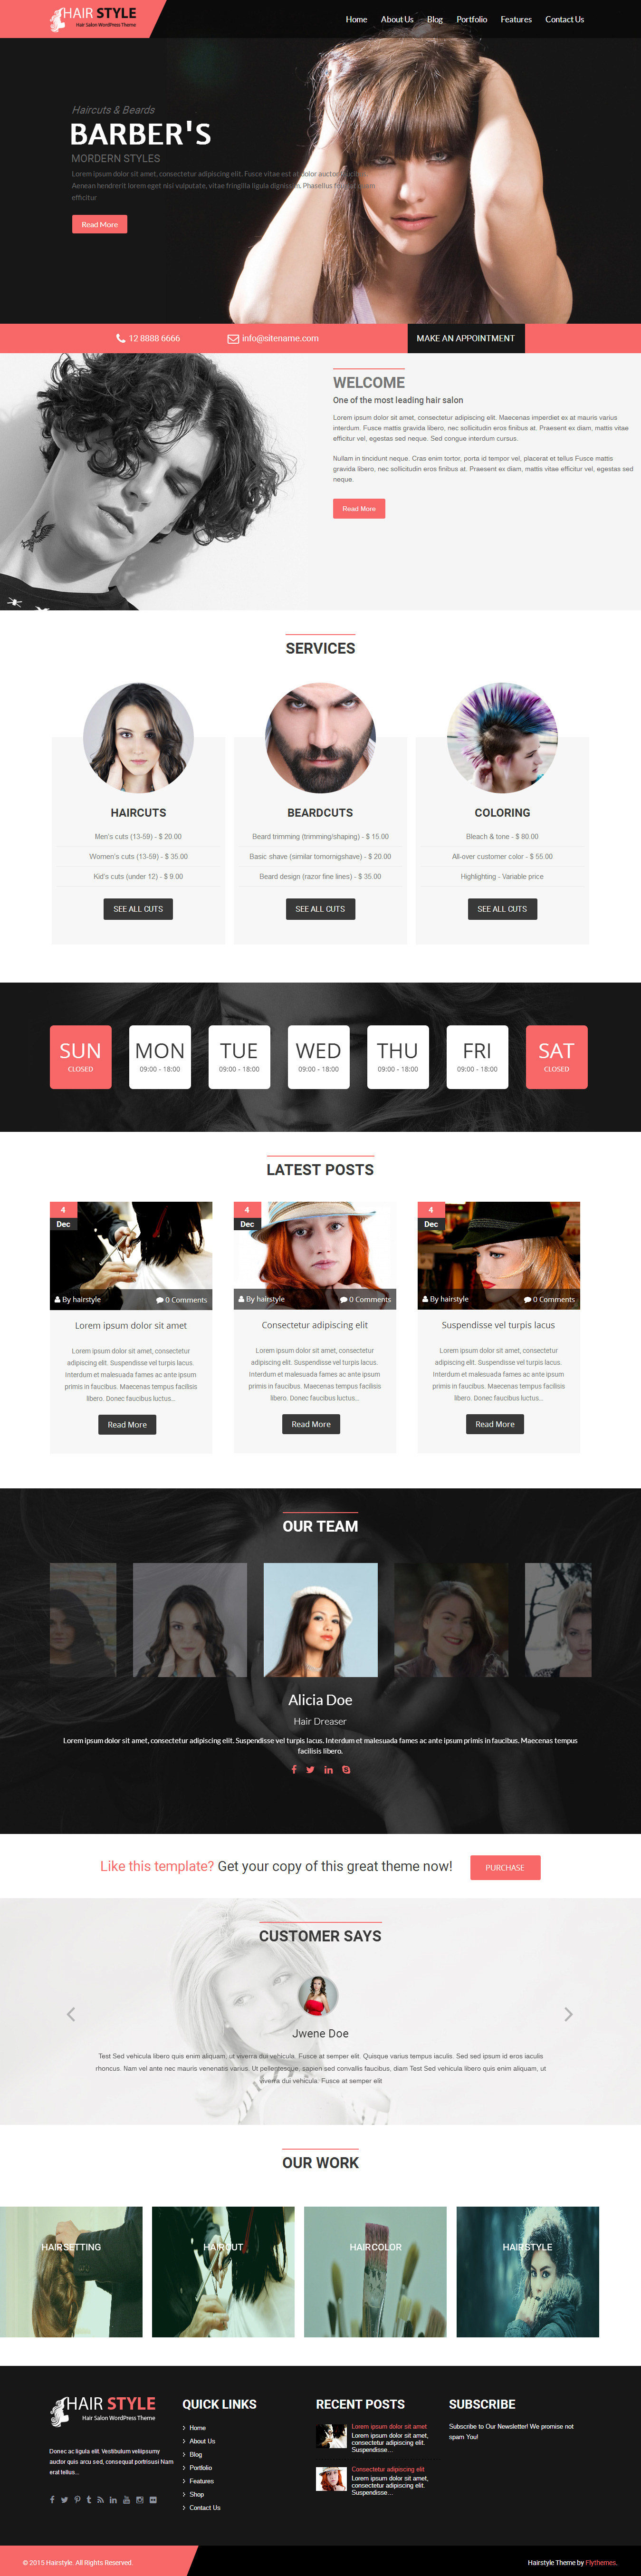 hairstyle-salon-wordpress-theme